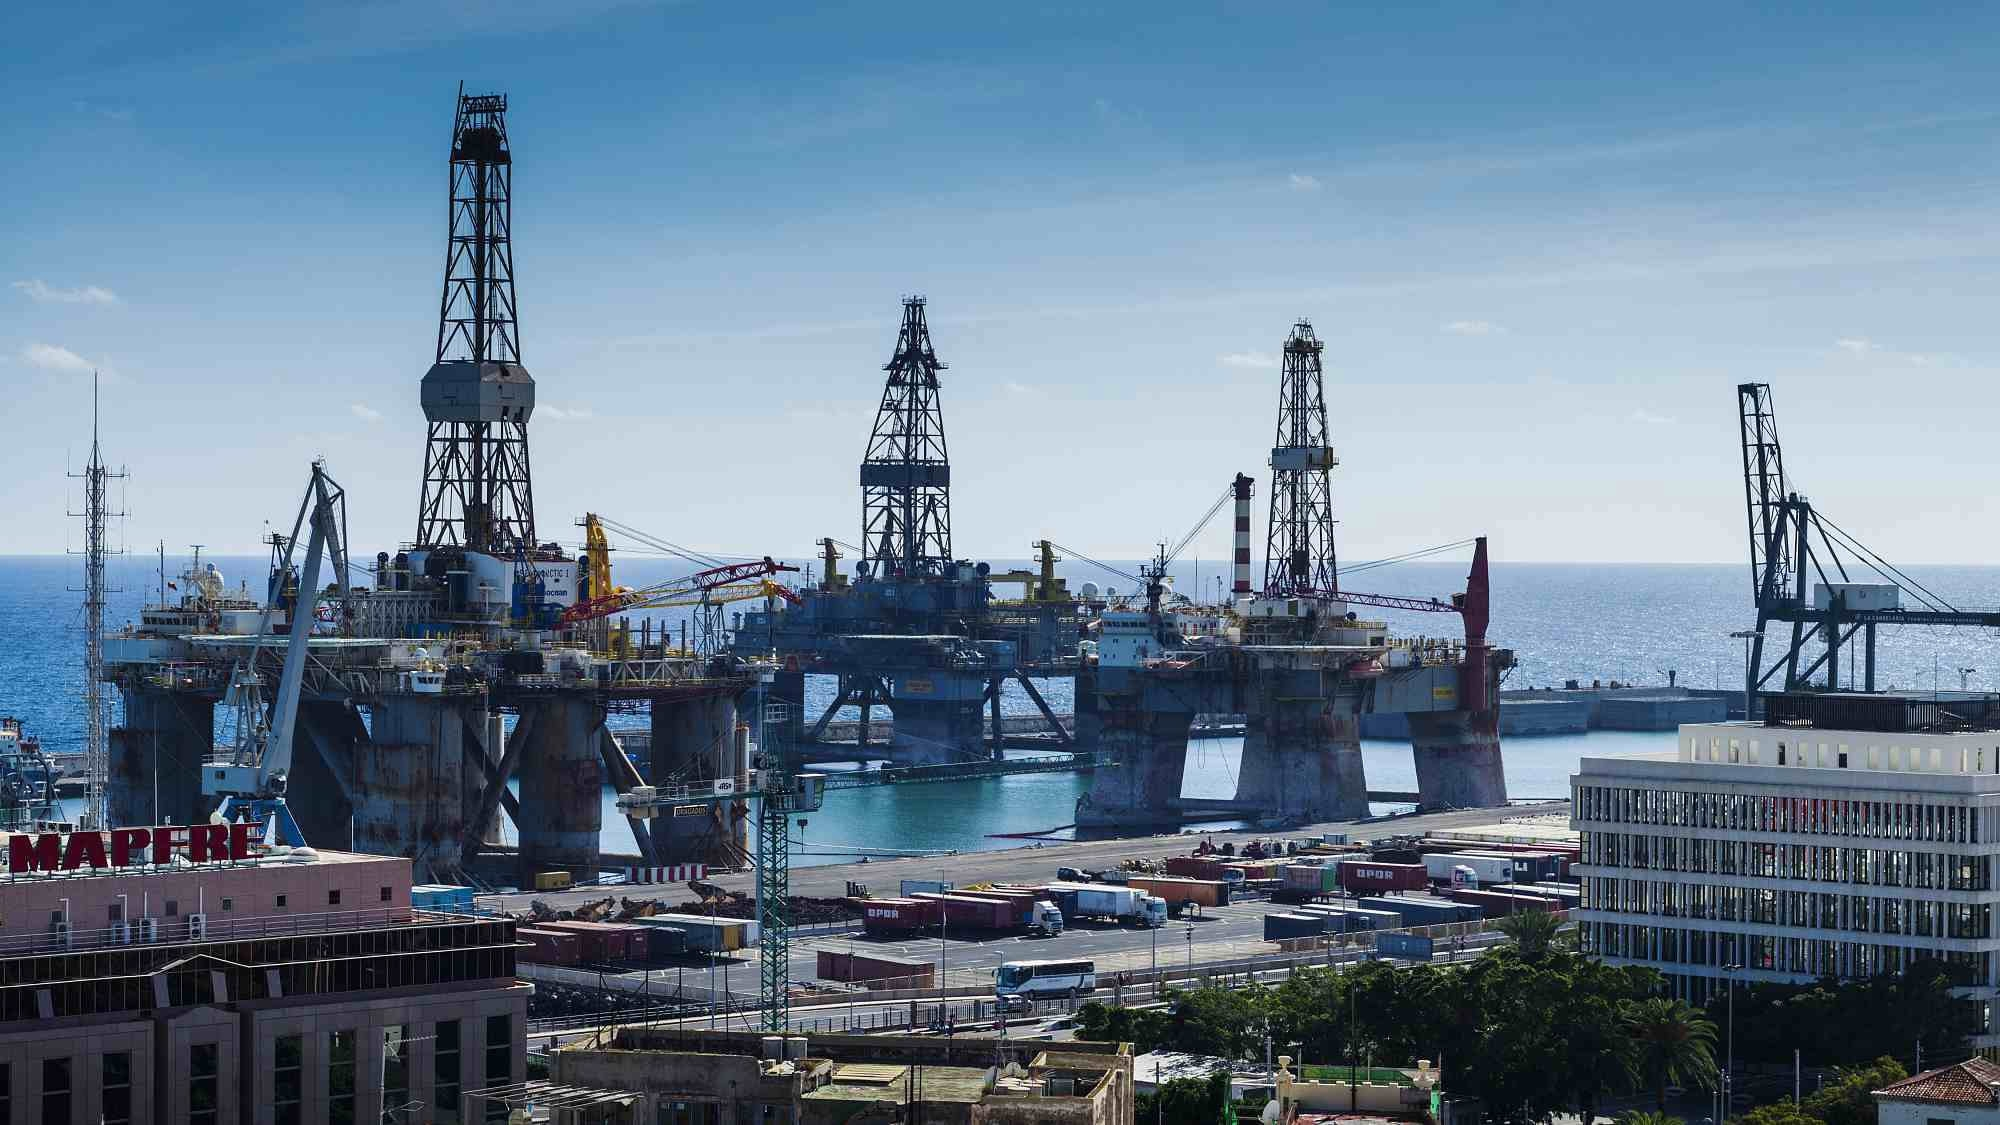 Russia can weather low oil prices for up to 10 years